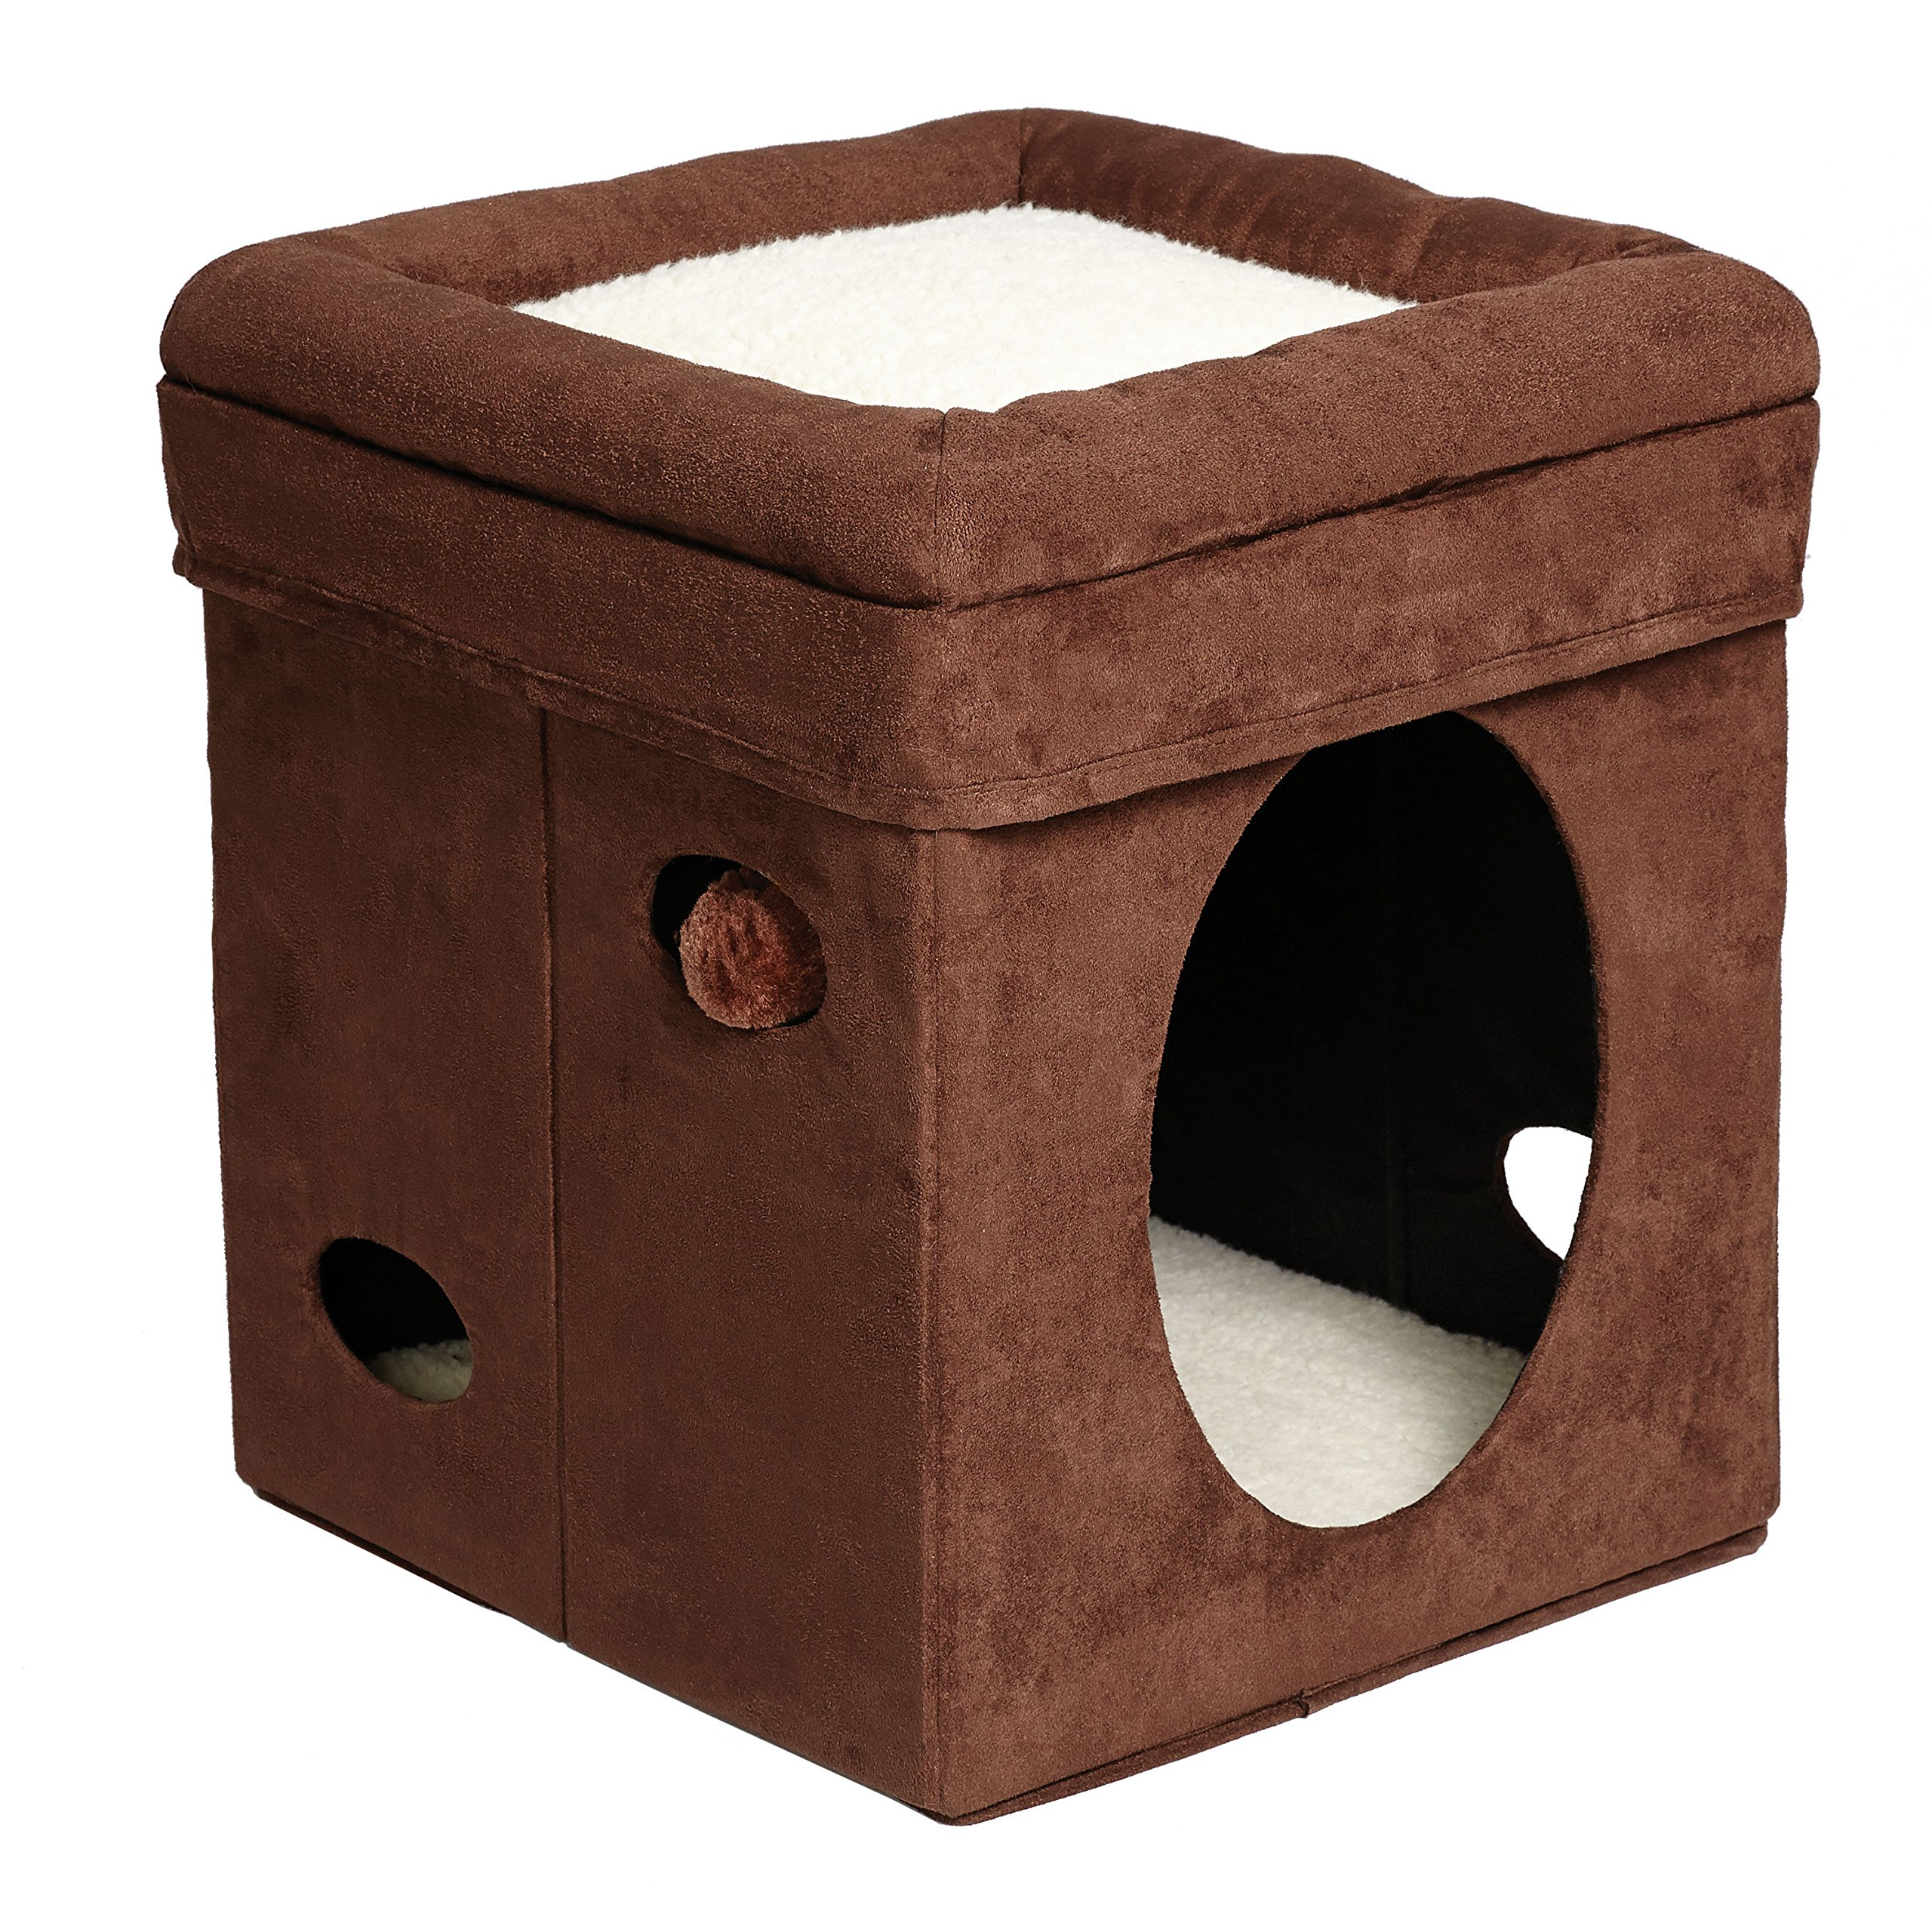 MidWest ''The Original'' Curious Cat Cube, Cat House / Cat Condo in Brown Faux Suede & Synthetic Sheepskin by MidWest Homes for Pets